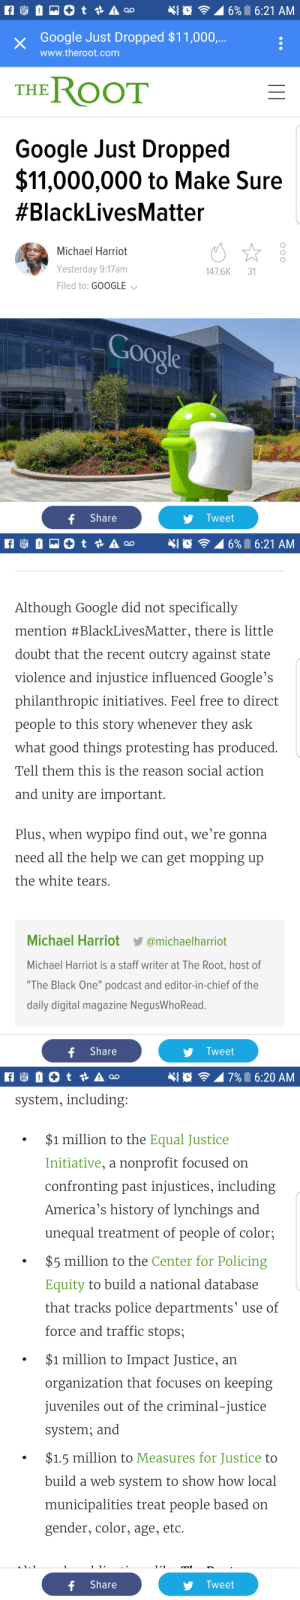 "Black Lives Matter, Google, and Police: 16%| 16:21 AM  Google Just Dropped $11,000,  www.theroot.com  Google Just Dropped  $11,000,000 to Make Sure  #BlackLivesMatter  Michael Harriot  Yesterday 9:17am  Filed to: GOOGLE  147.6K3  oogle  f Share  Tweet   6%. 6:21 AM  Although Google did not specifically  mention #BlackLivesMatter, there is little  doubt that the recent outcry against state  violence and injustice influenced Google's  philanthropic initiatives. Feel free to direct  people to this story whenever they ask  what good things protesting has produced  Tell them this is the reason social action  and unitv are important  Plus, when wypipo find out, we're gonna  need all the help we can get mopping up  the white tears  Michael Harriot@michaelharriot  Michael Harriot is a staff writer at The Root, host of  ""The Black One"" podcast and editor-in-chief of the  daily digital magazine NegusWhoRead  f Share  Tweet   796 6:20 AM  system, including  $1 million to the Equal Justice  Initiative, a nonprofit focused on  confronting past injustices, including  America's history of lynchings and  unequal treatment of people of color;  $5 million to the Center for Policing  Equity to build a national database  that tracks police departments' use of  force and traffic stops;  $1 million to Impact Justice, an  organization that focuses on keeping  juveniles out of the criminal-justice  system; and  $1.5 million to Measures for Justice to  build a web svstem to show how local  municipalities treat people based on  gender, color, age, etc  A 11 1  f Share  Tweet ardnale:  melanin-king: Shout out to google What's your move, Bing?   Be nice to bing they probably have four dollars to spare"